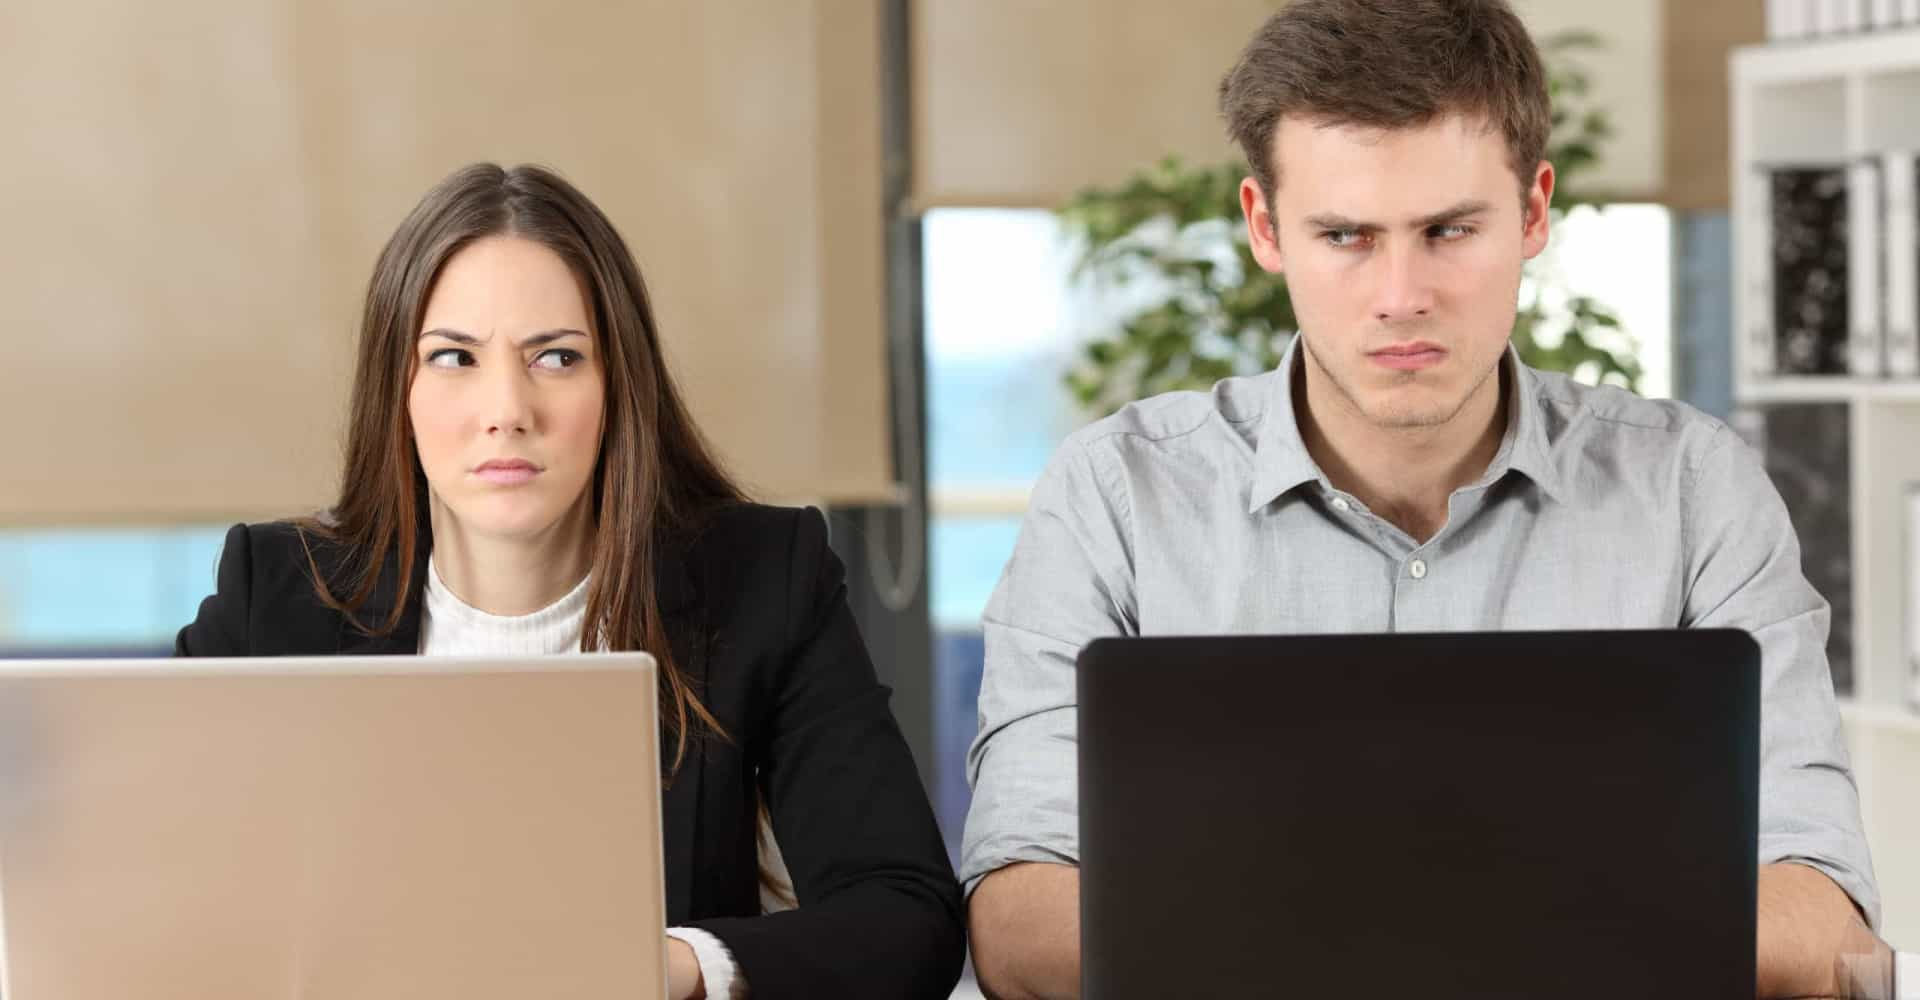 Are you guilty of these annoying office habits?